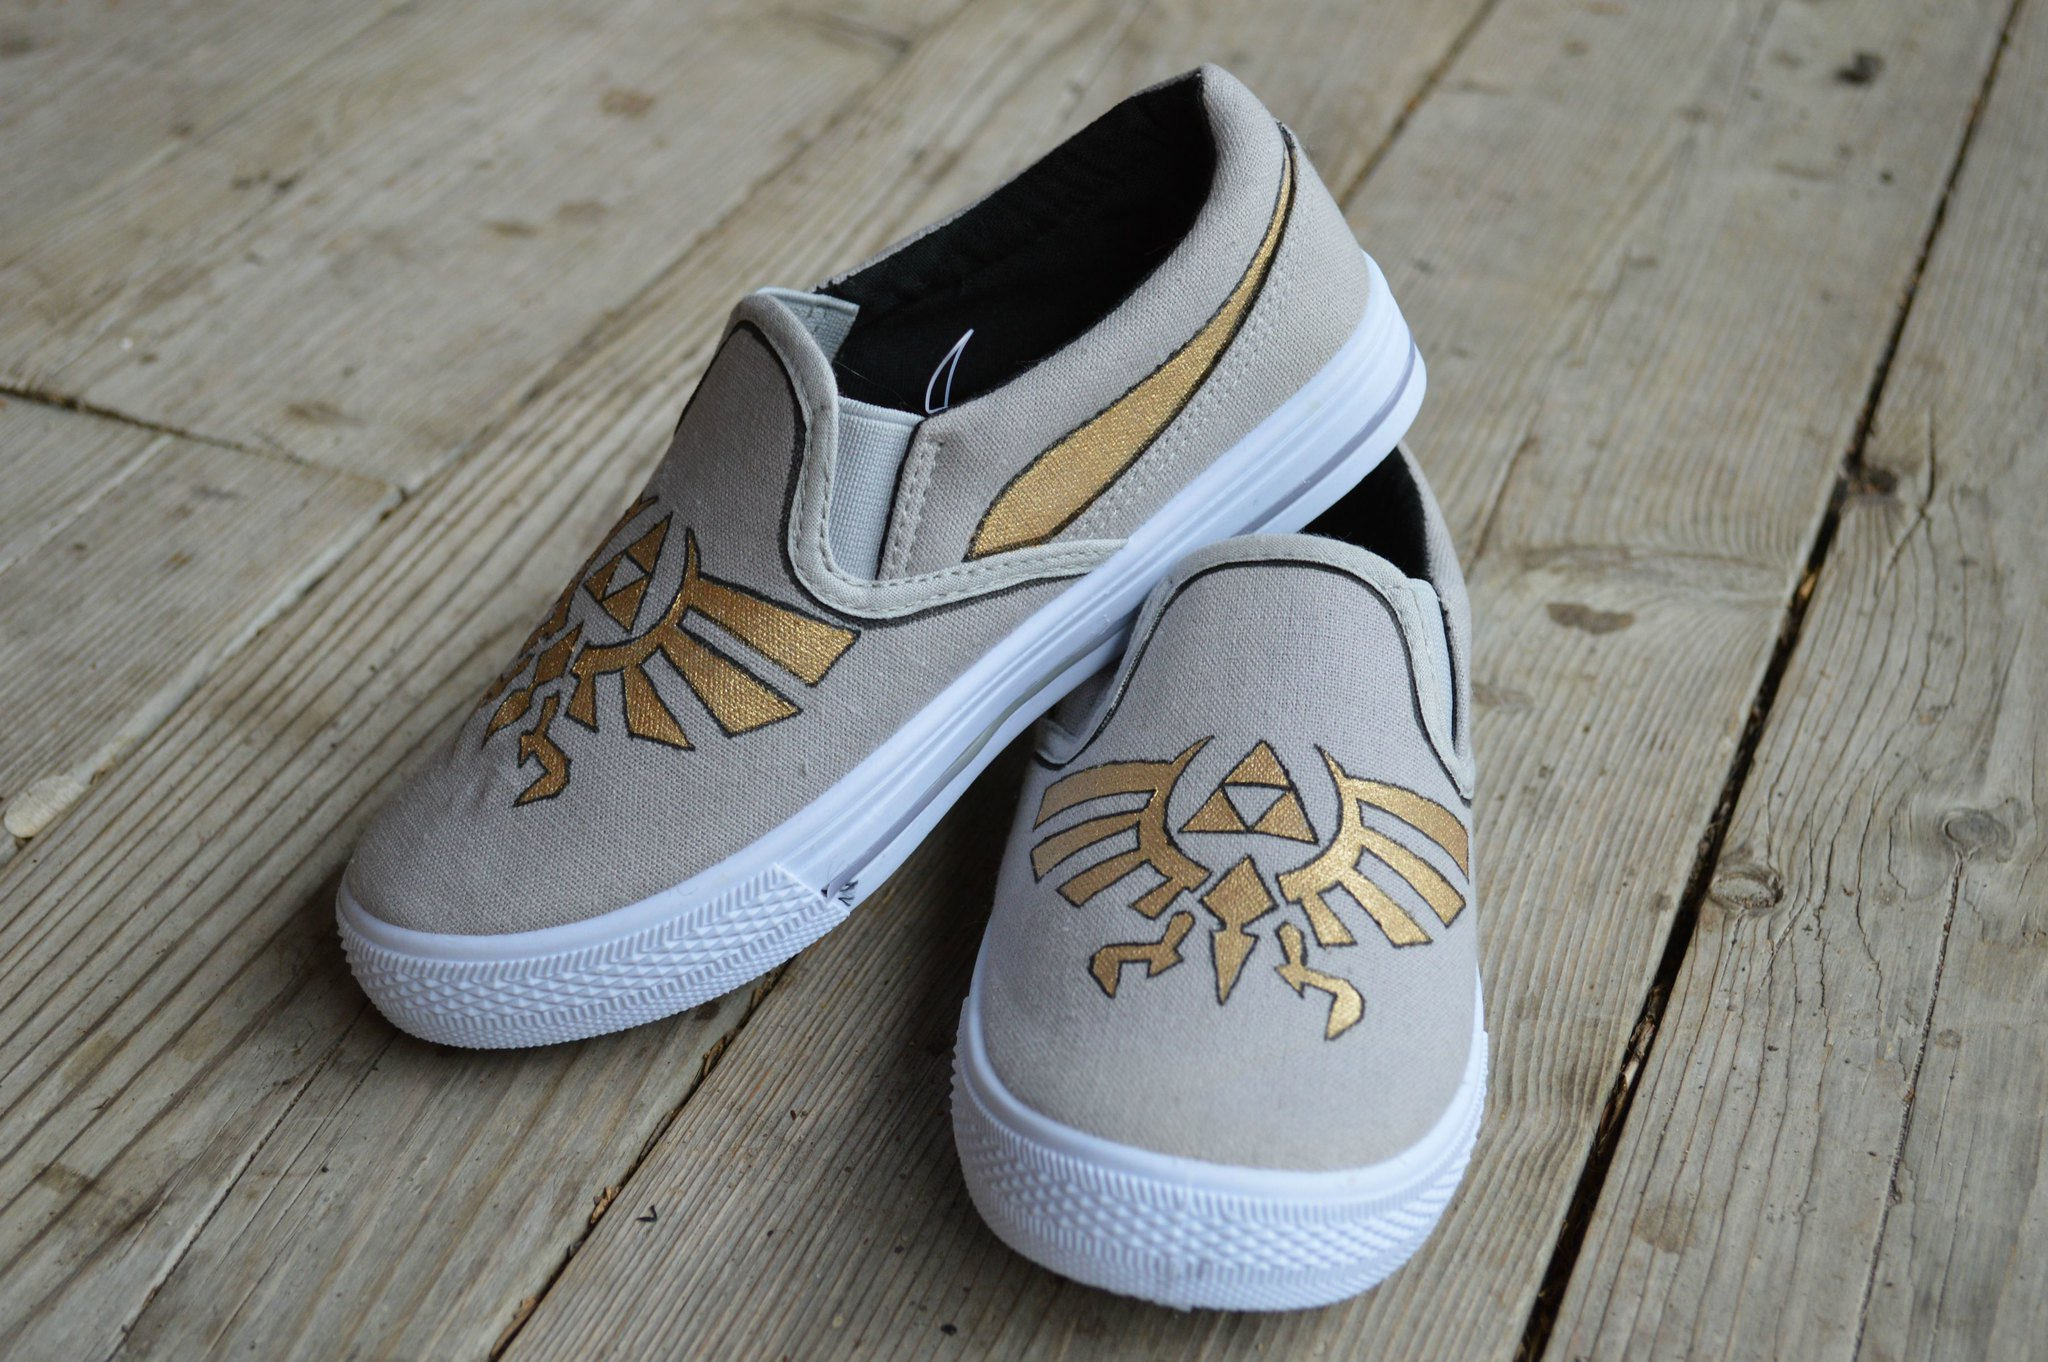 The Legend of Zelda sneakers by SheriffKarli